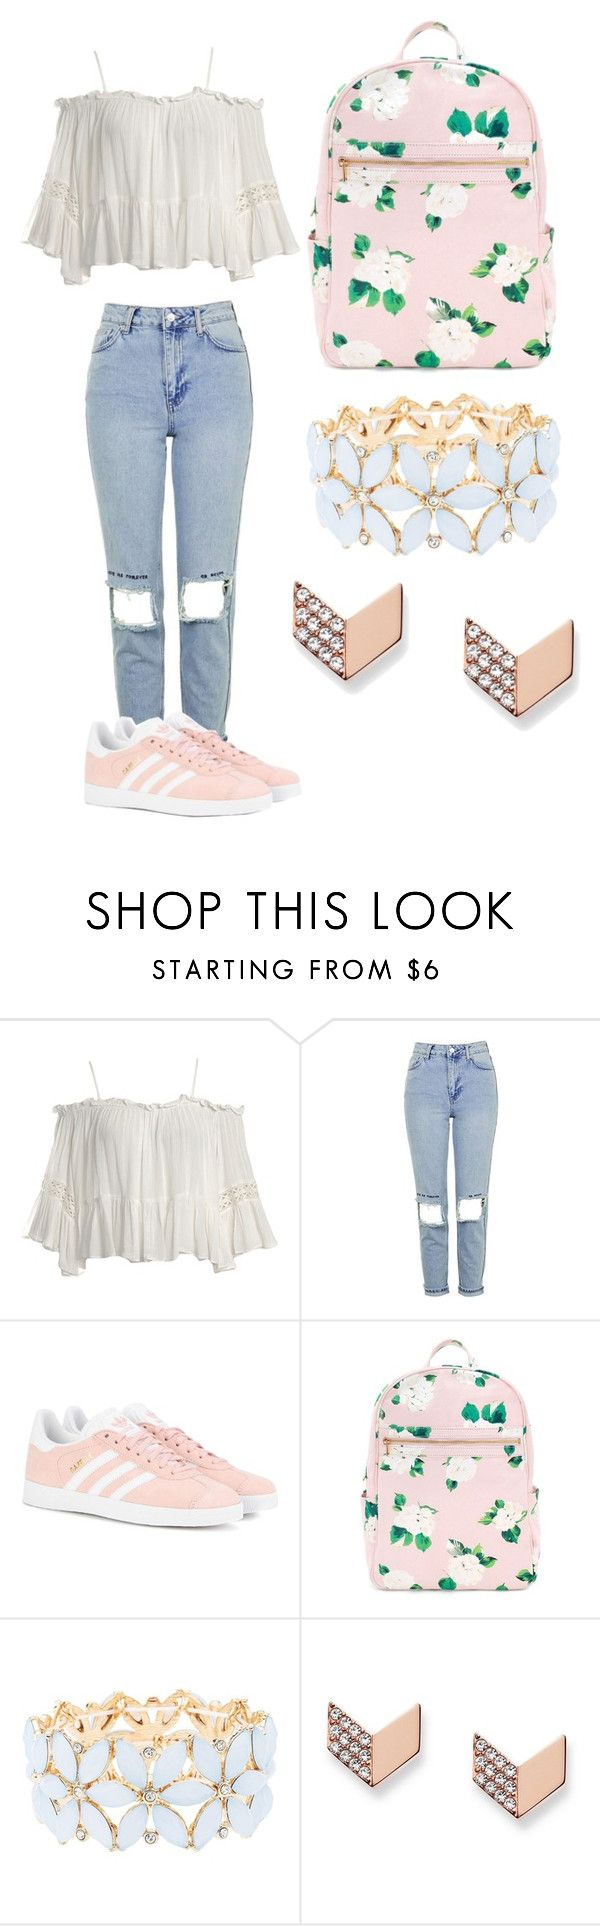 """""""Untitled #96"""" by cocoabeautyandfashion ❤ liked on Polyvore featuring Sans Souci, Topshop, adidas Originals, Charlotte Russe and FOSSIL"""